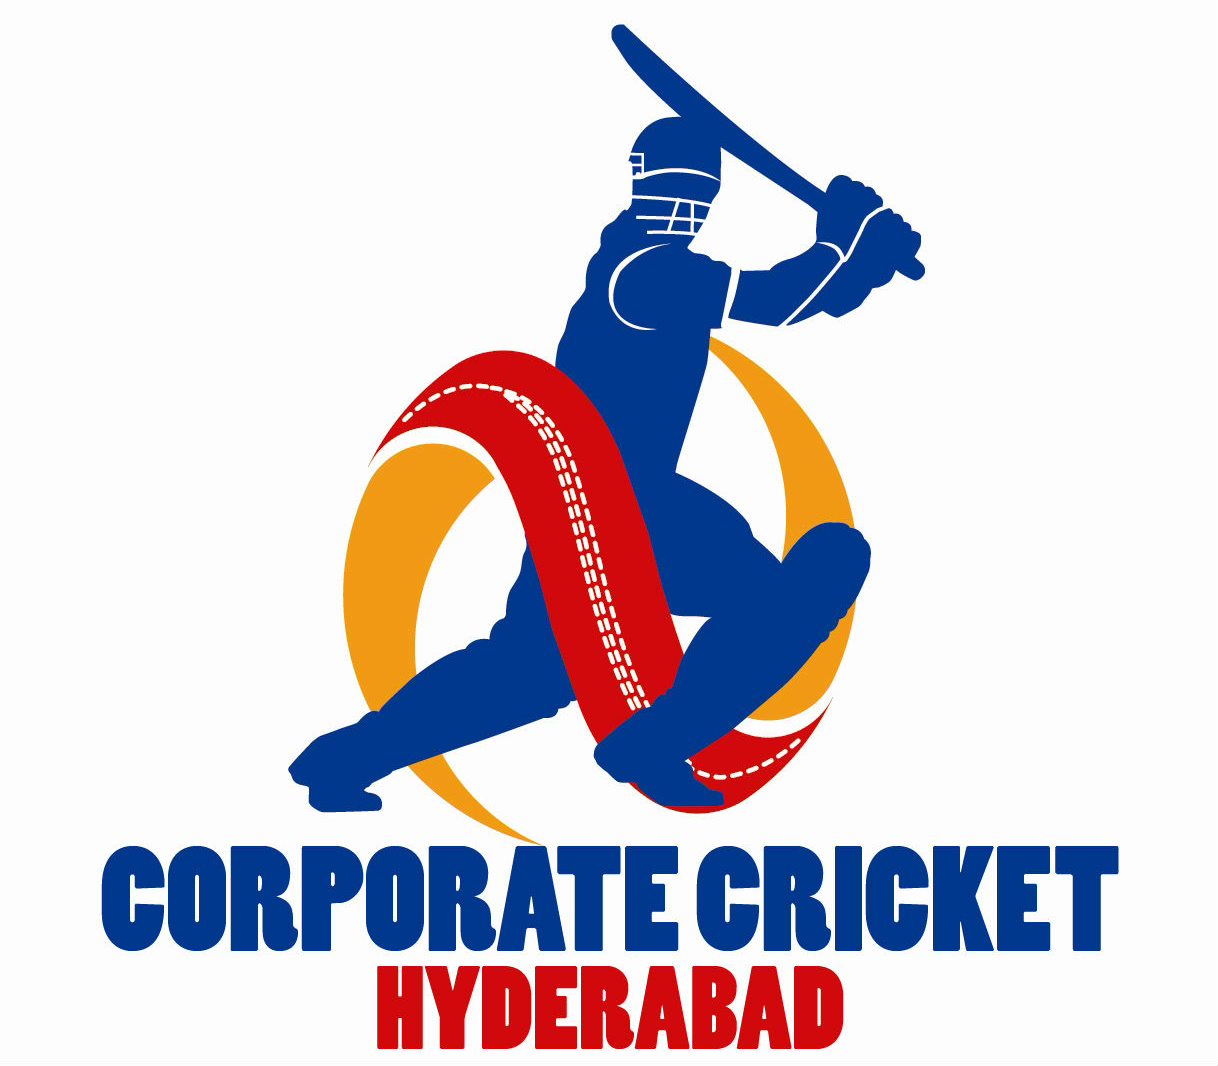 Invitation For Corporate Cricket Tournament: Corporate Cricket Hyderabad Tournament